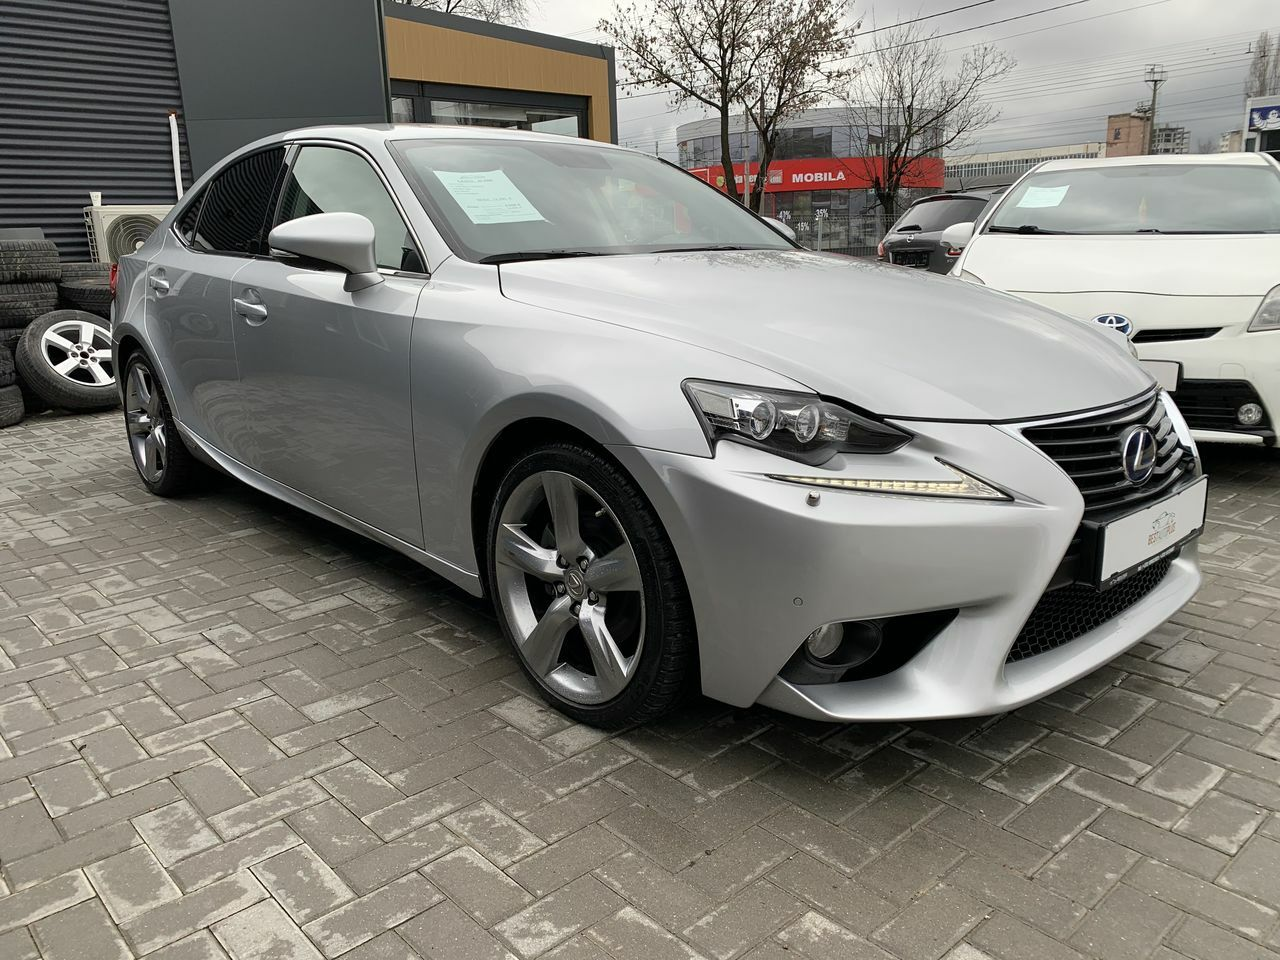 "<span style=""font-weight: bold;"">lexus is series&nbsp;</span>"